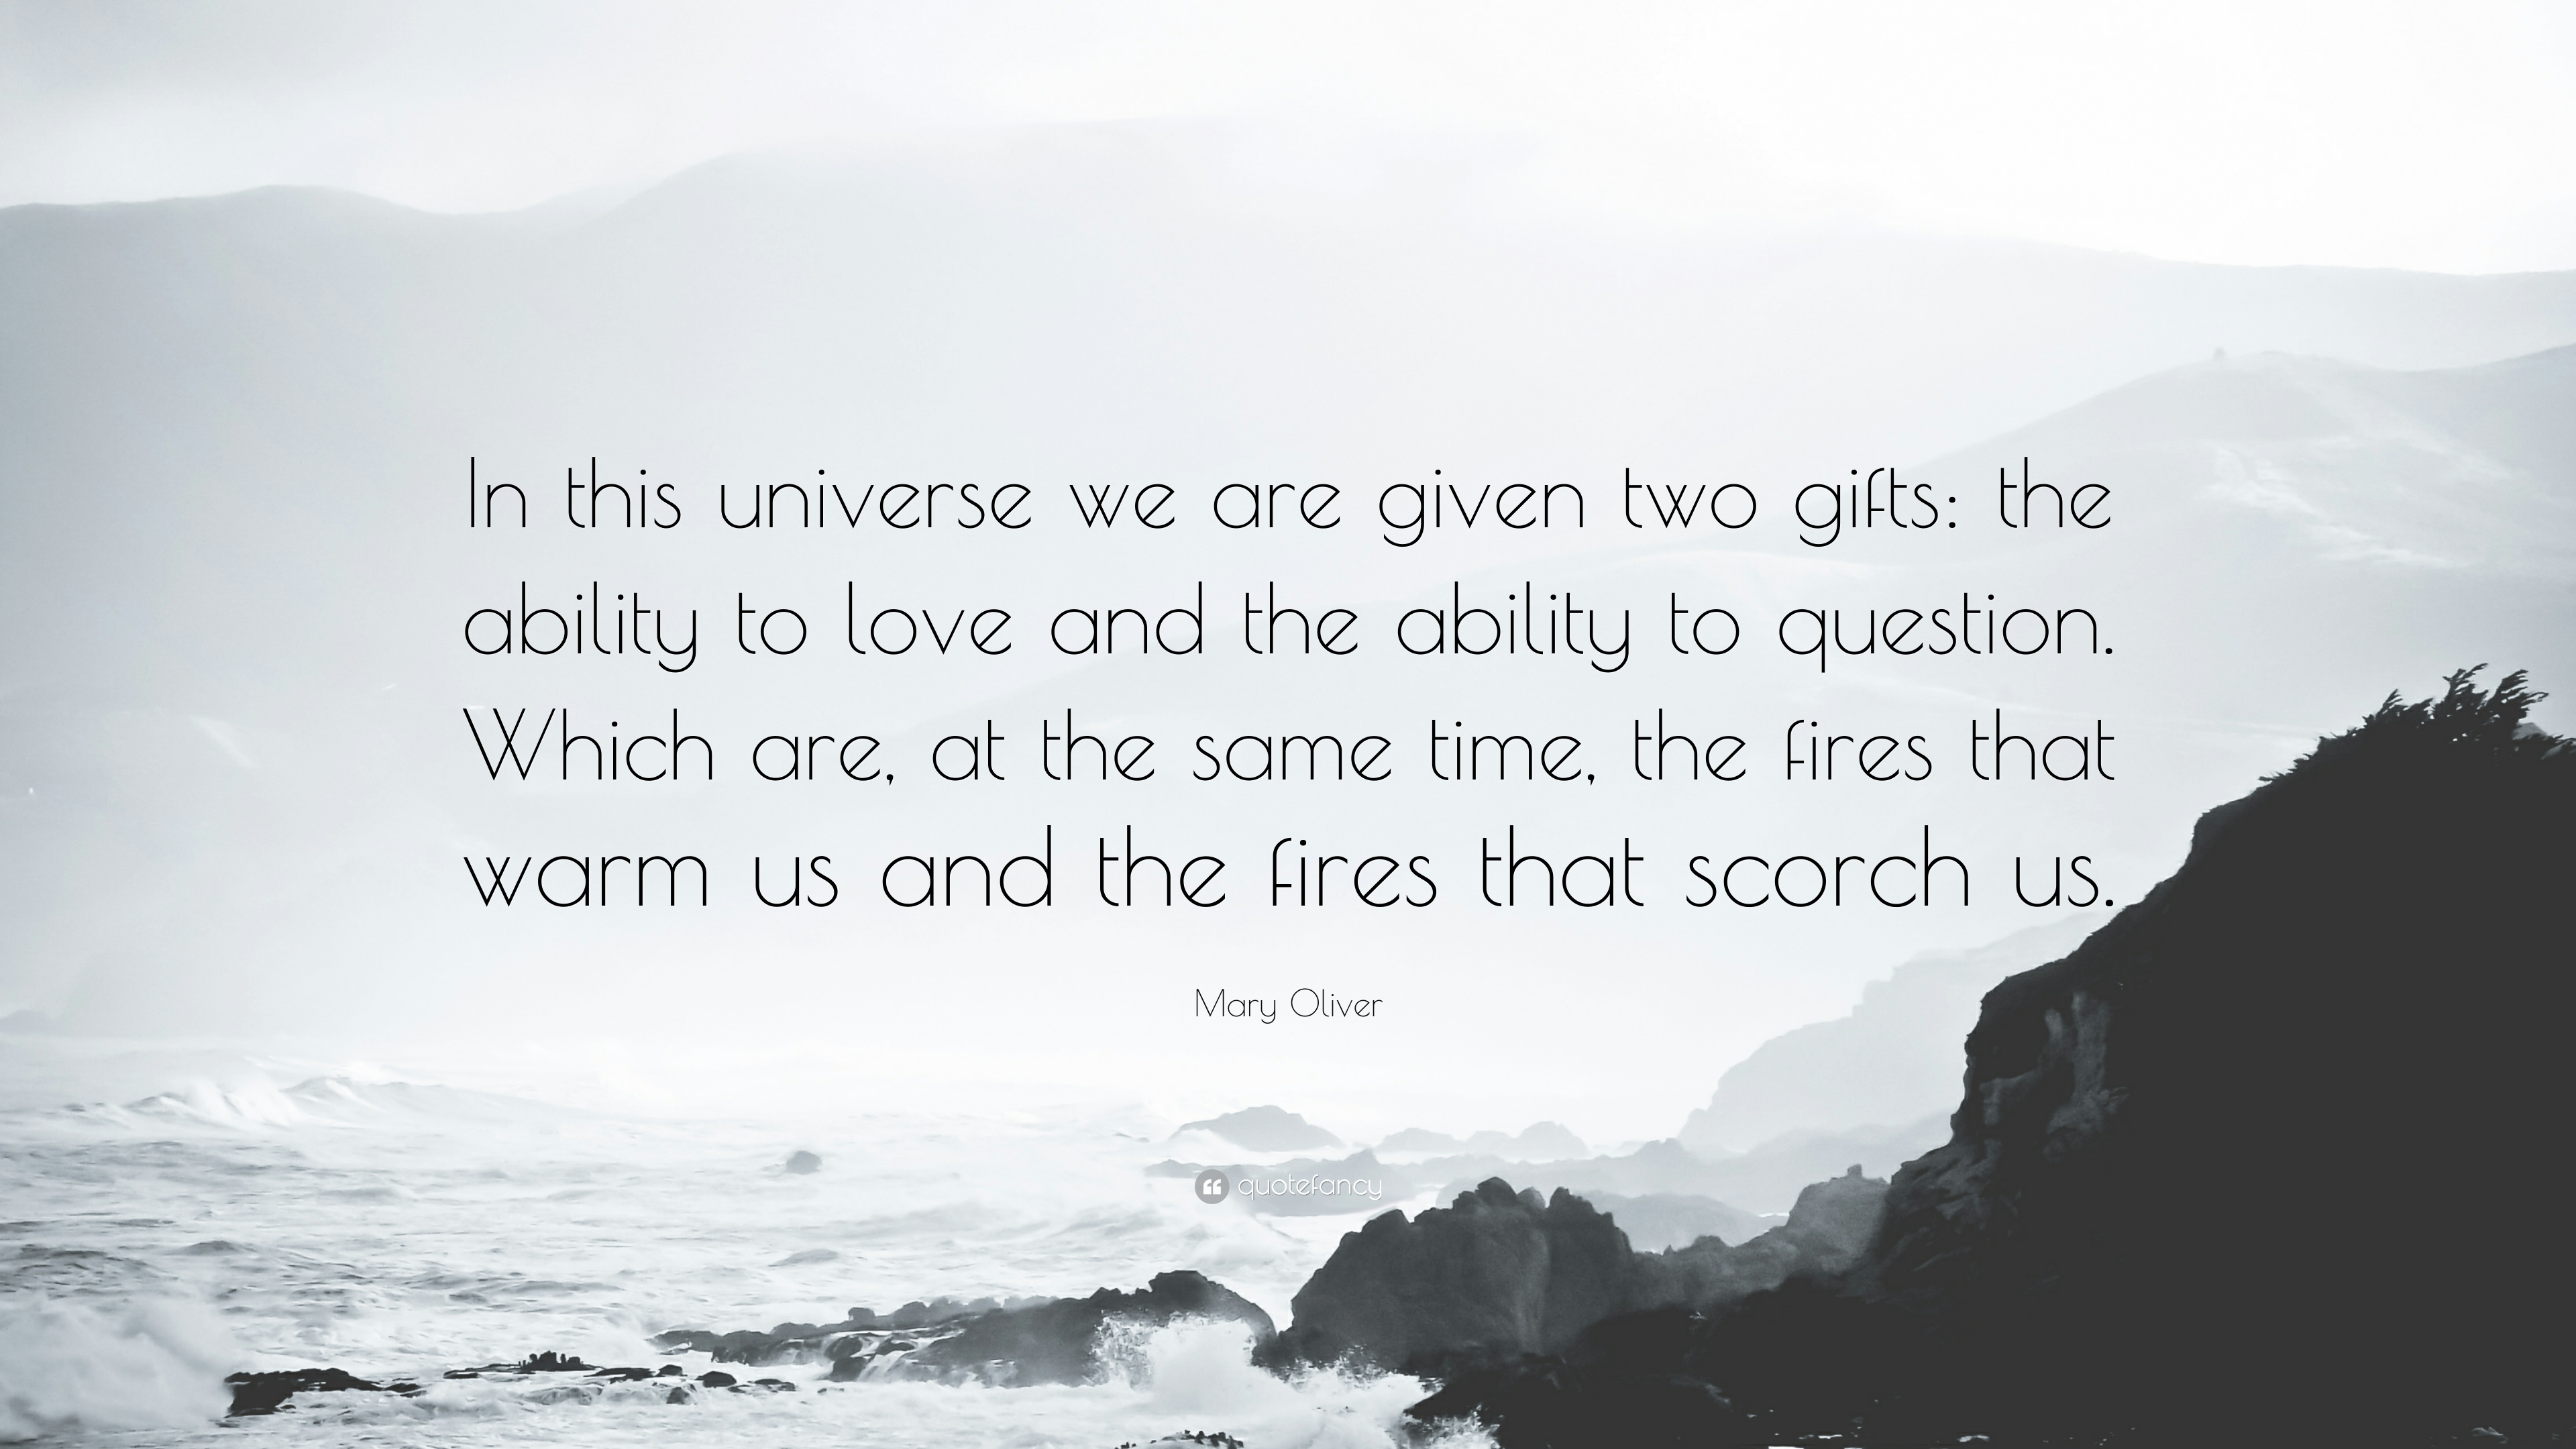 Charmant Mary Oliver Quote: U201cIn This Universe We Are Given Two Gifts: The Ability